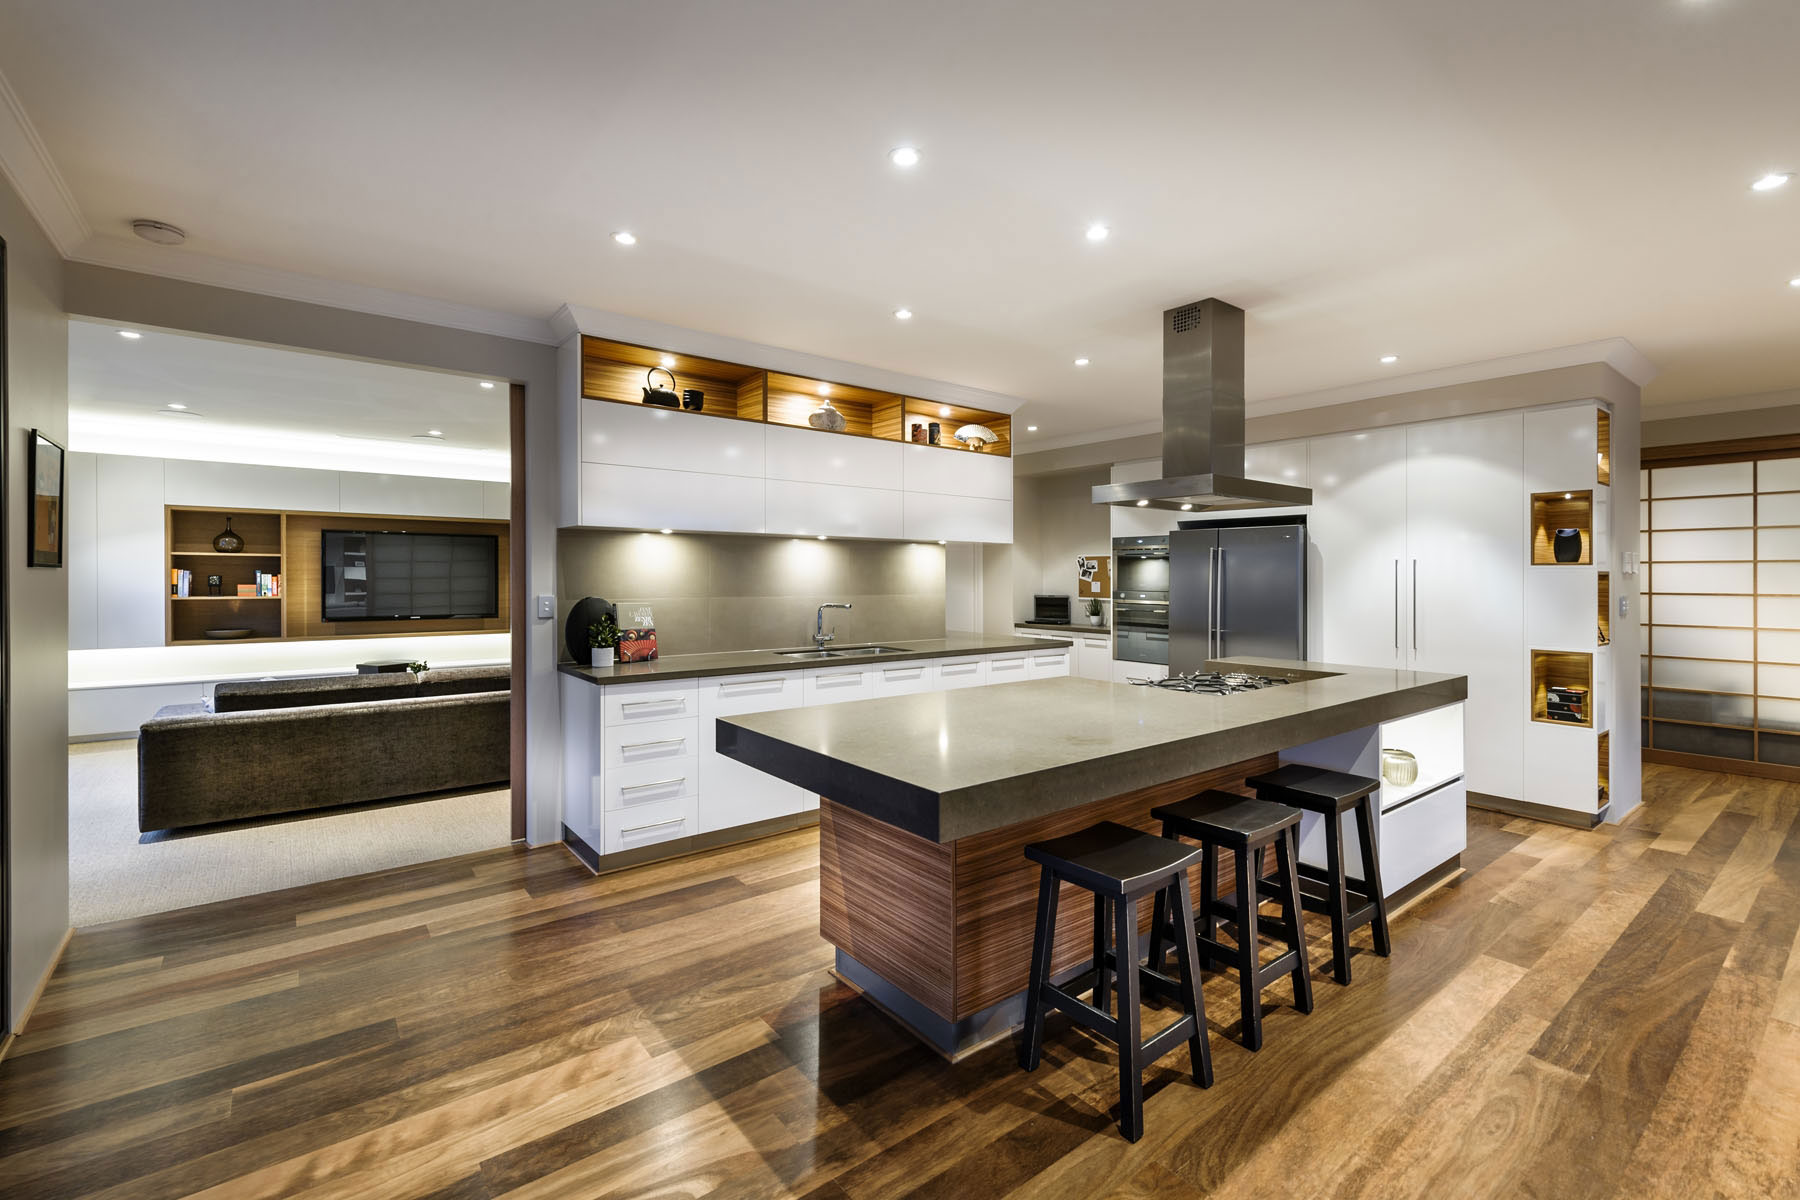 Breakfast Bar, Kitchen Island, Wooden Floor, House in Burns Beach, Perth